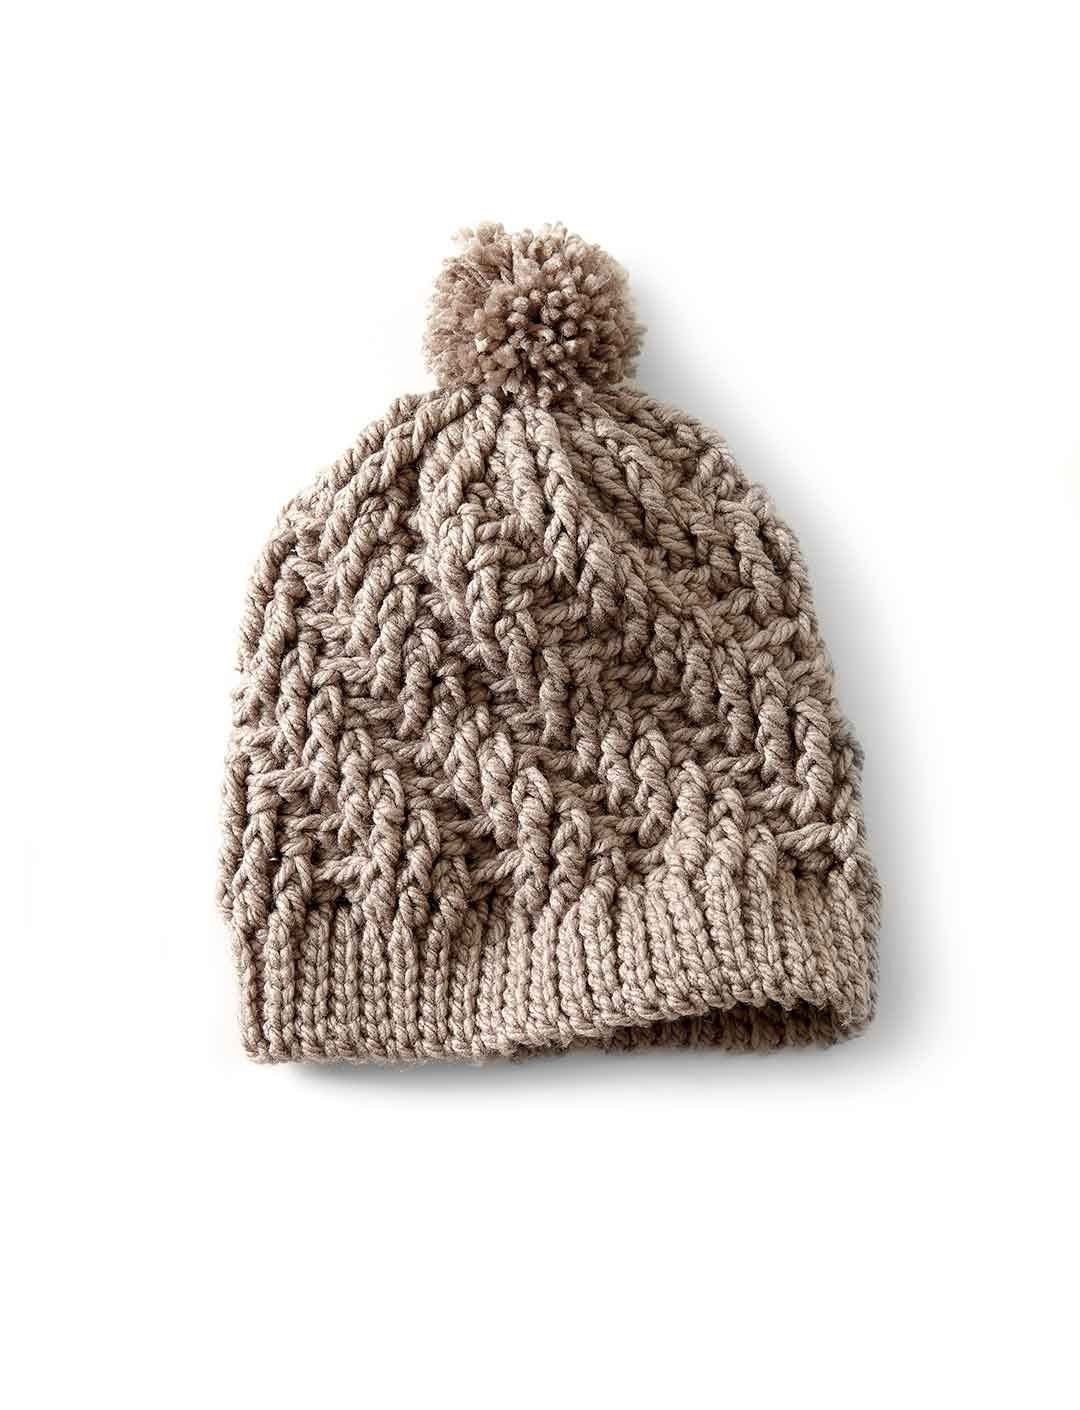 Stepping Texture Hat free crochet beanie pattern | WHOot Best ...